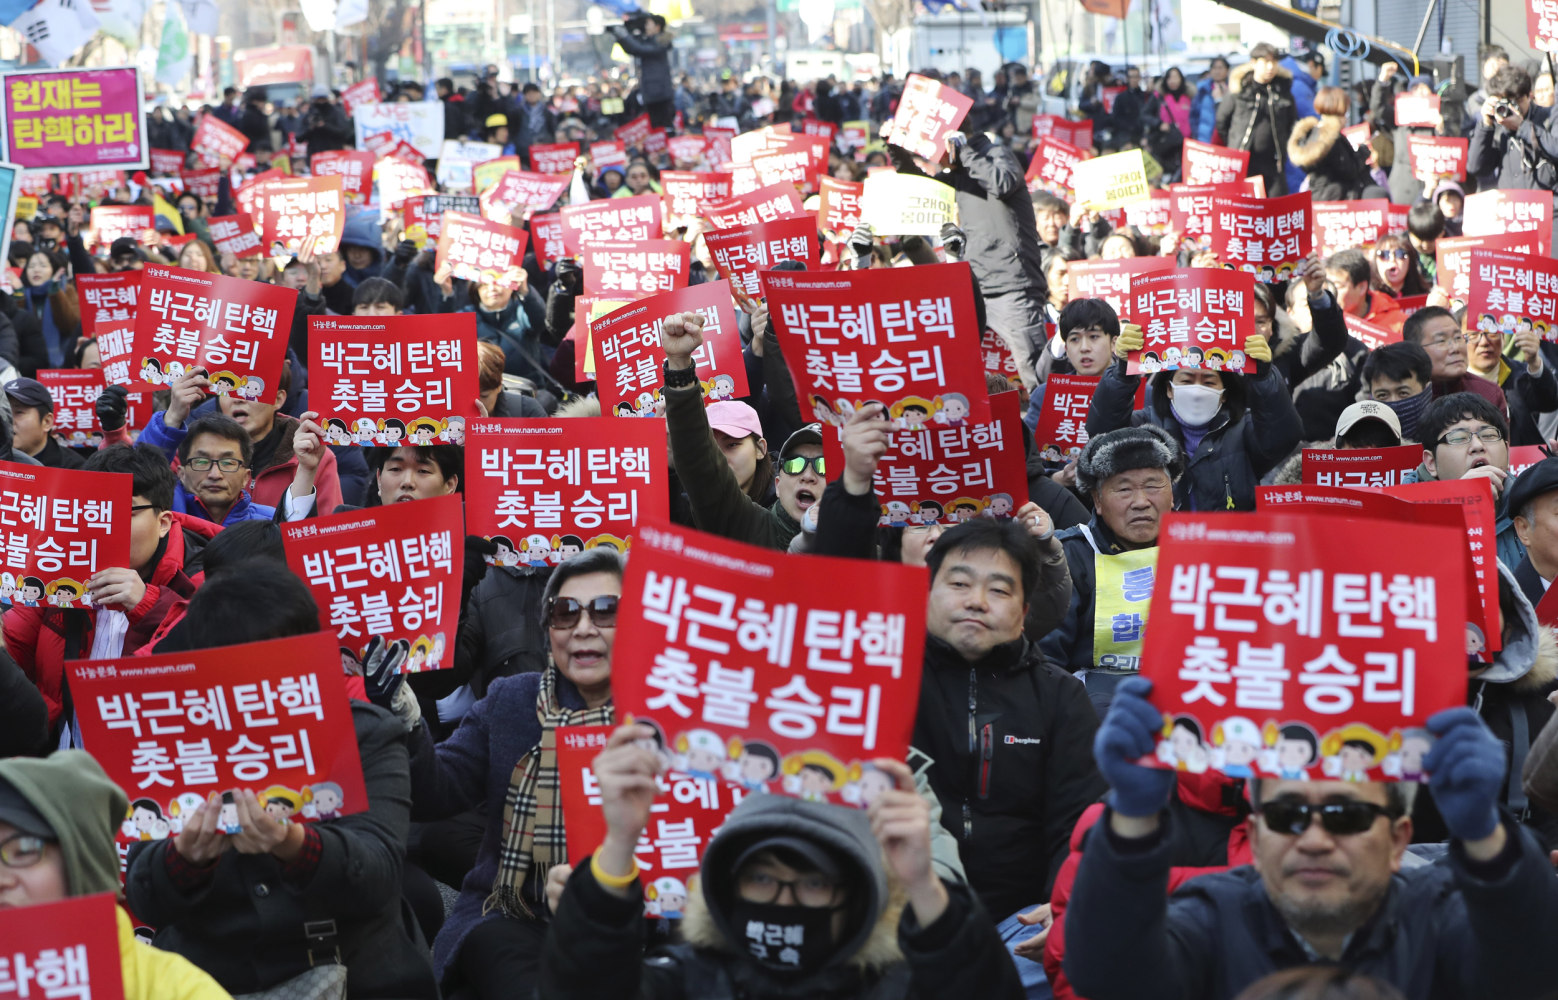 Students respond to South Korean President's impeachment